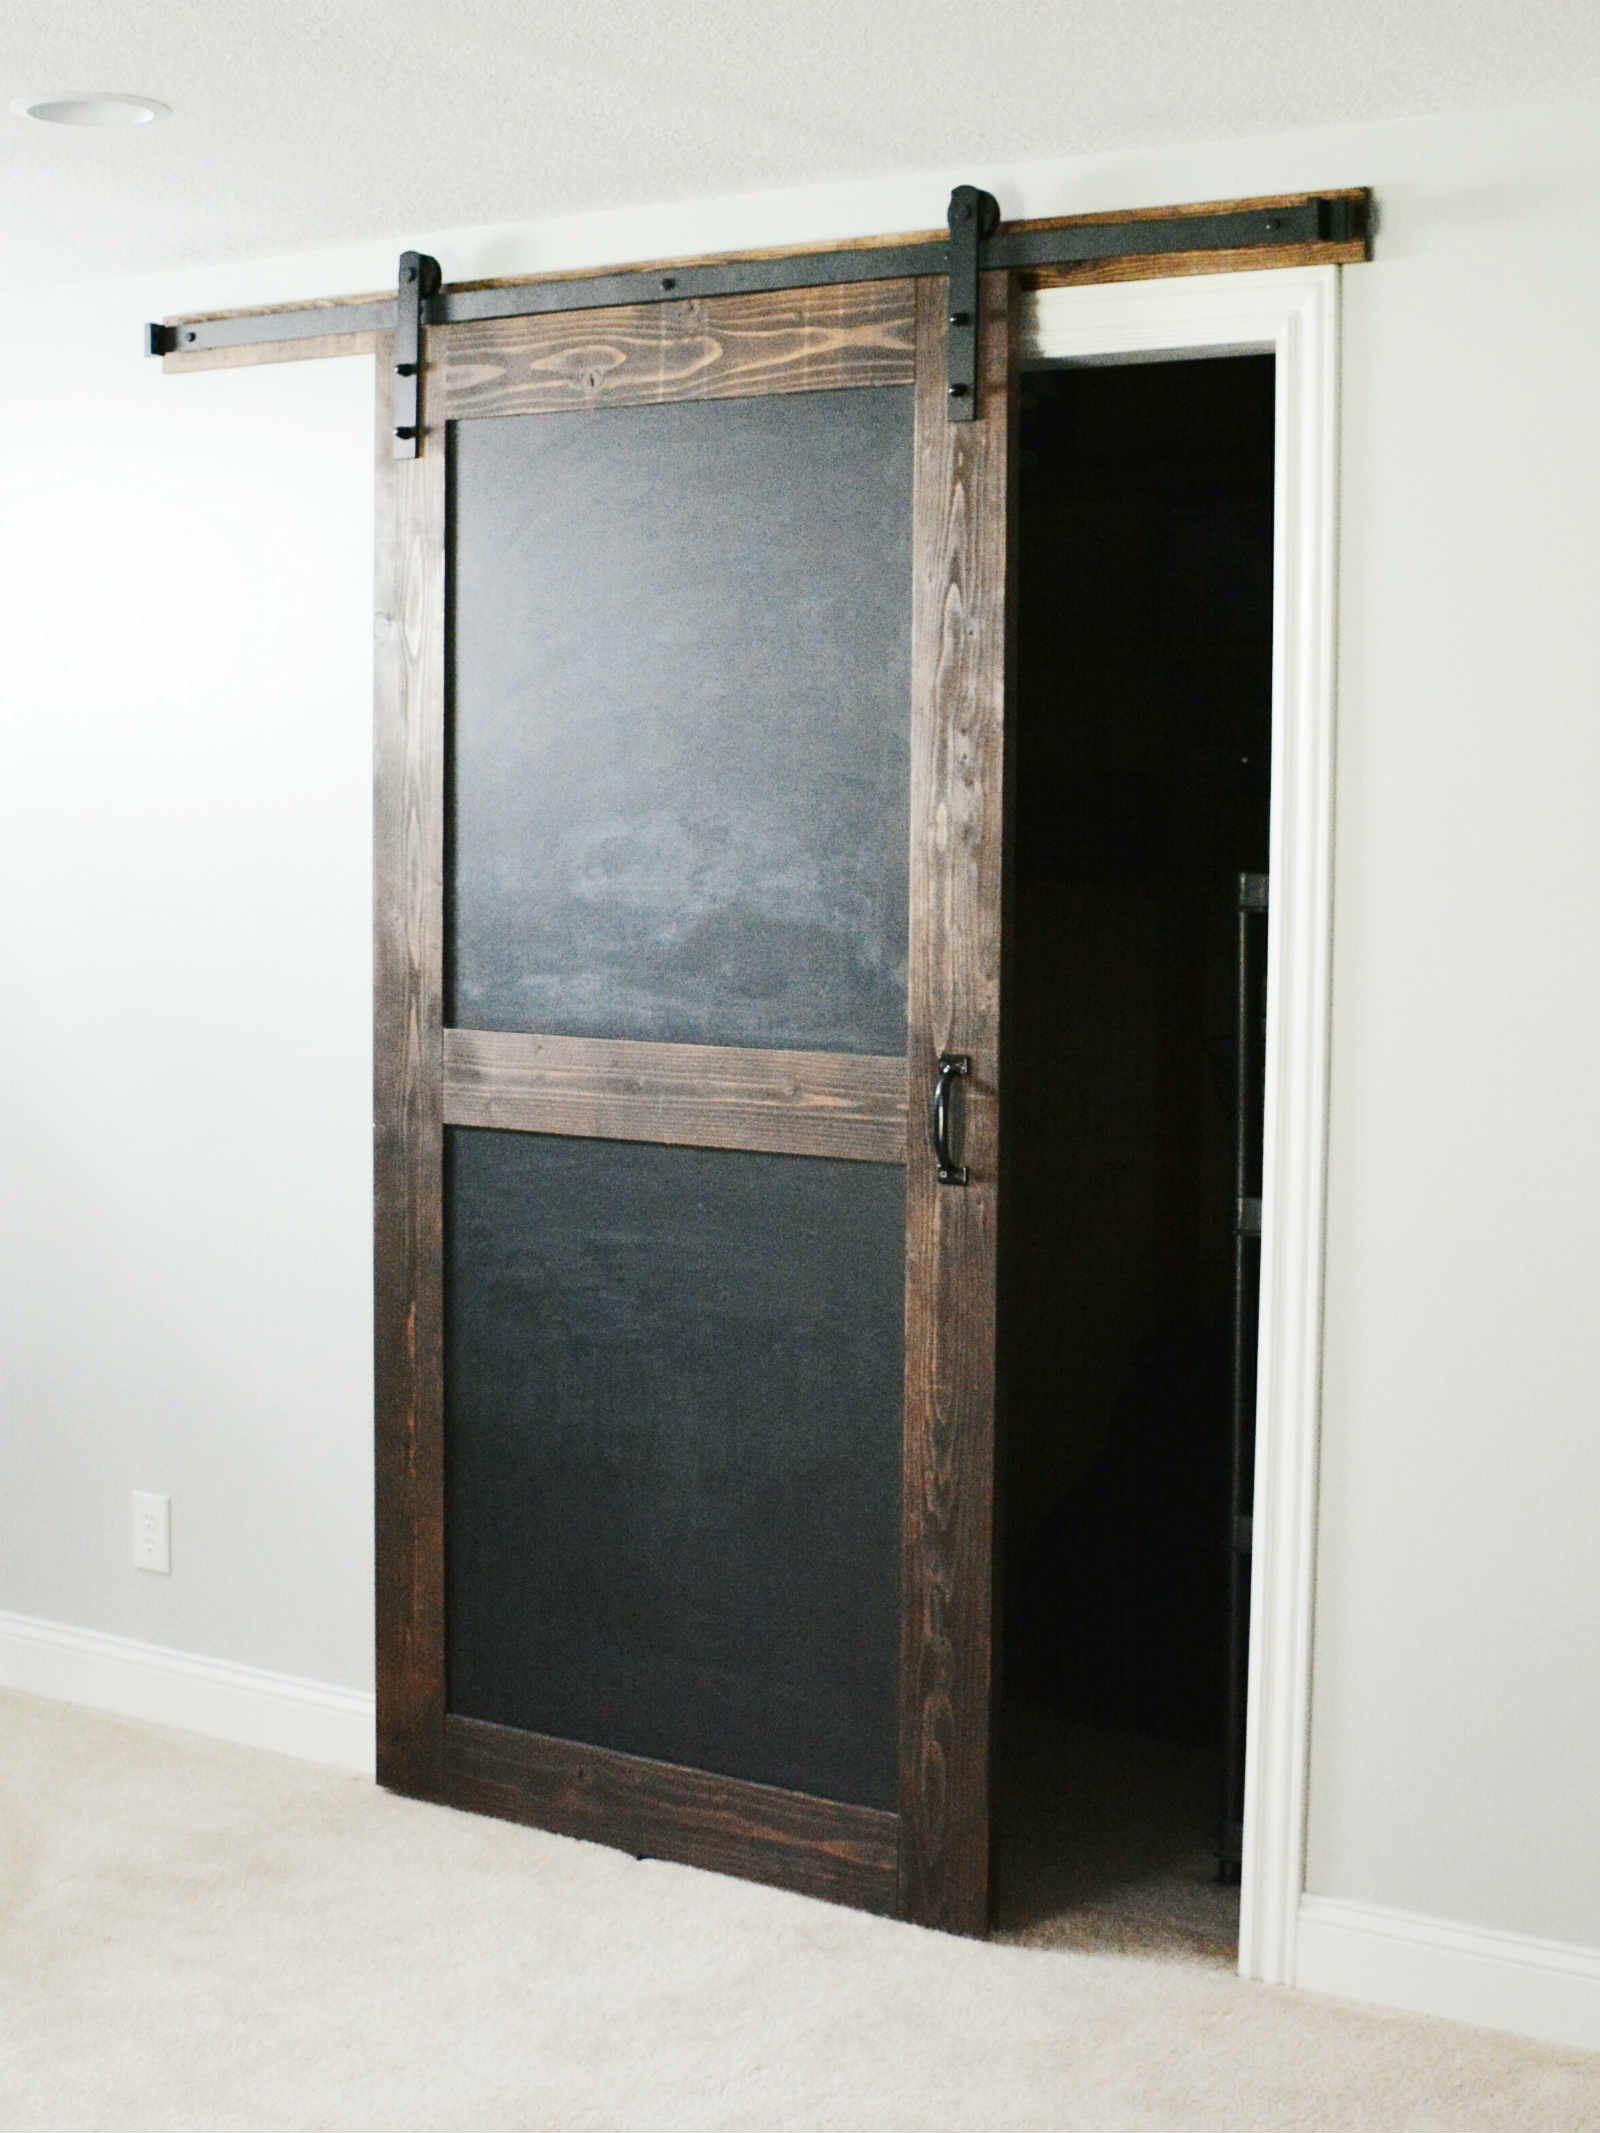 Chalkboard Sliding Barn Door Walston Door Company Barn Doors Sliding Glass Barn Doors Barn Door